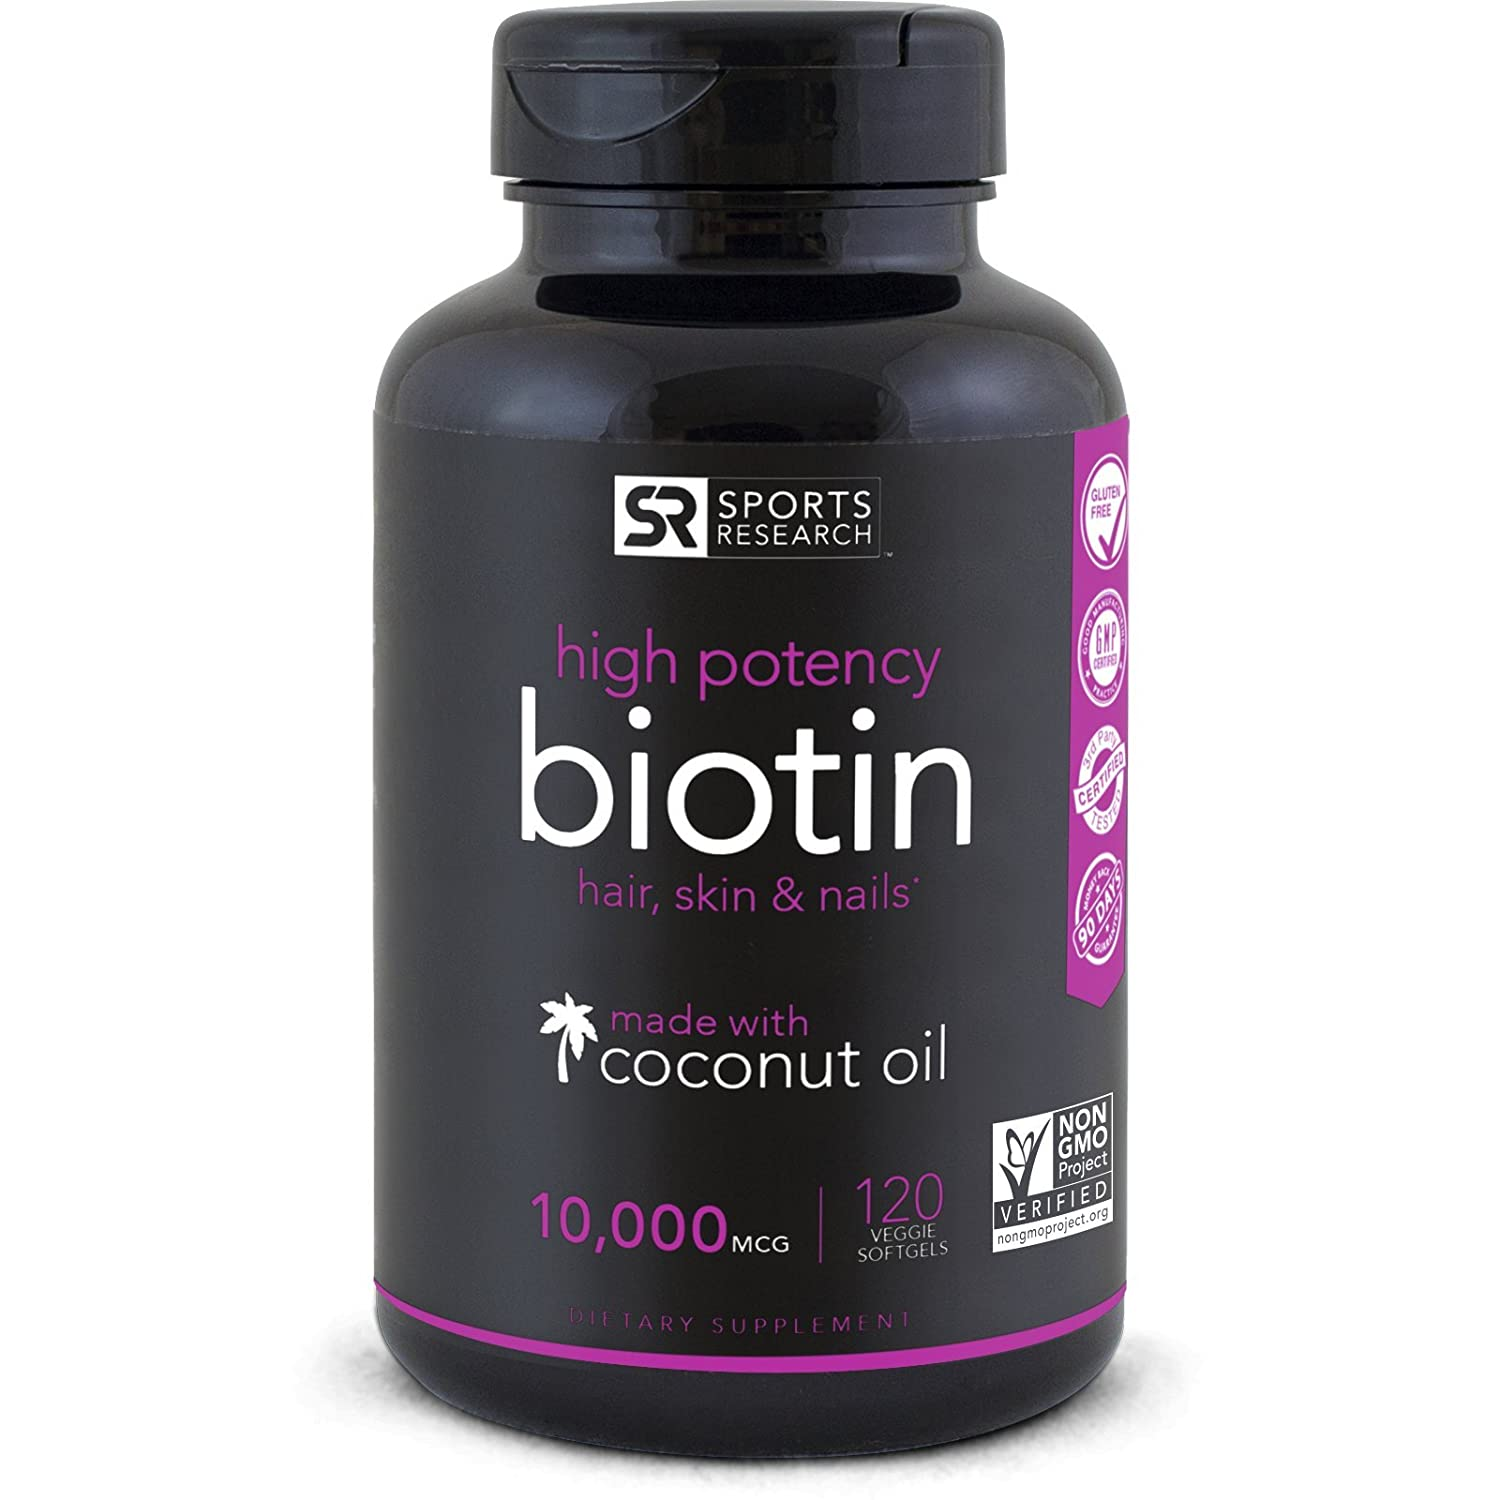 High Potency Biotin (10,000mcg) with Organic Coconut Oil